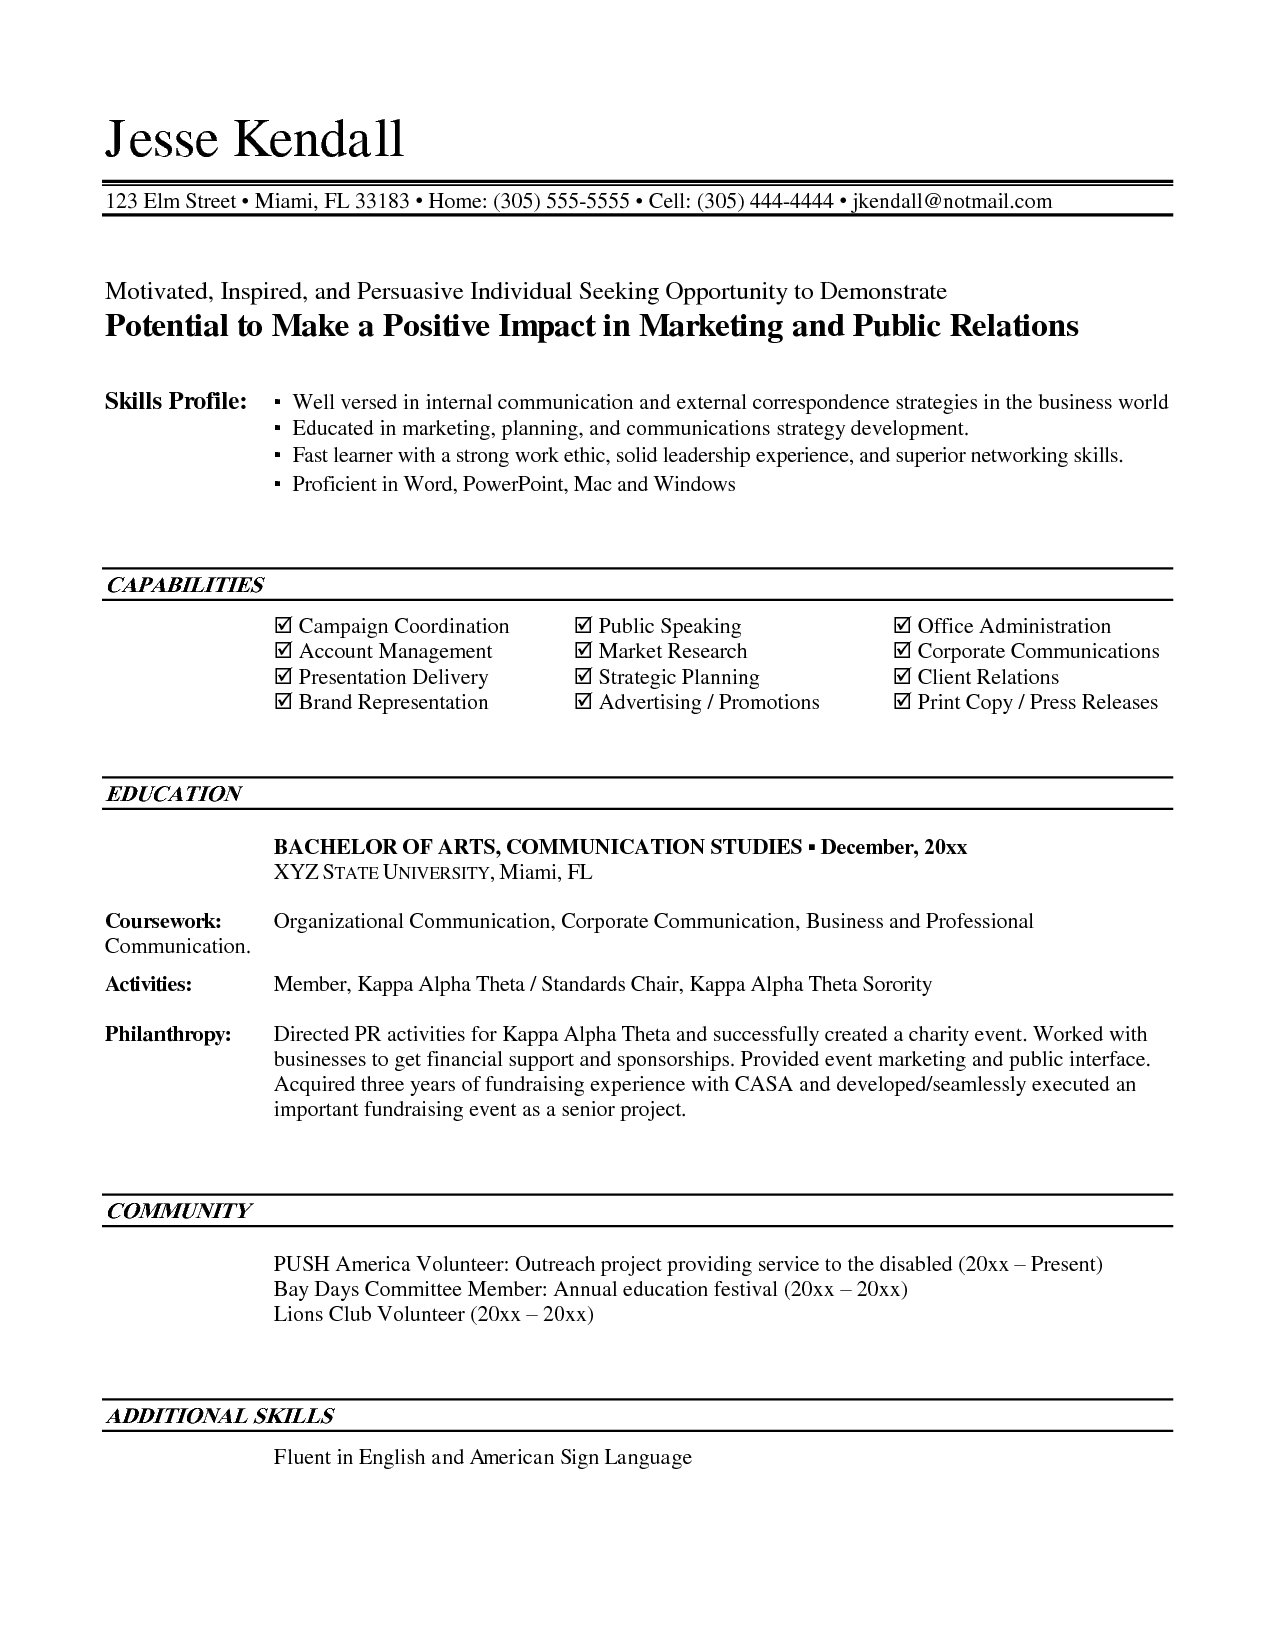 Marketing Resume Template Entry Level Resume Template Bank Teller Supervisor Cover Letter